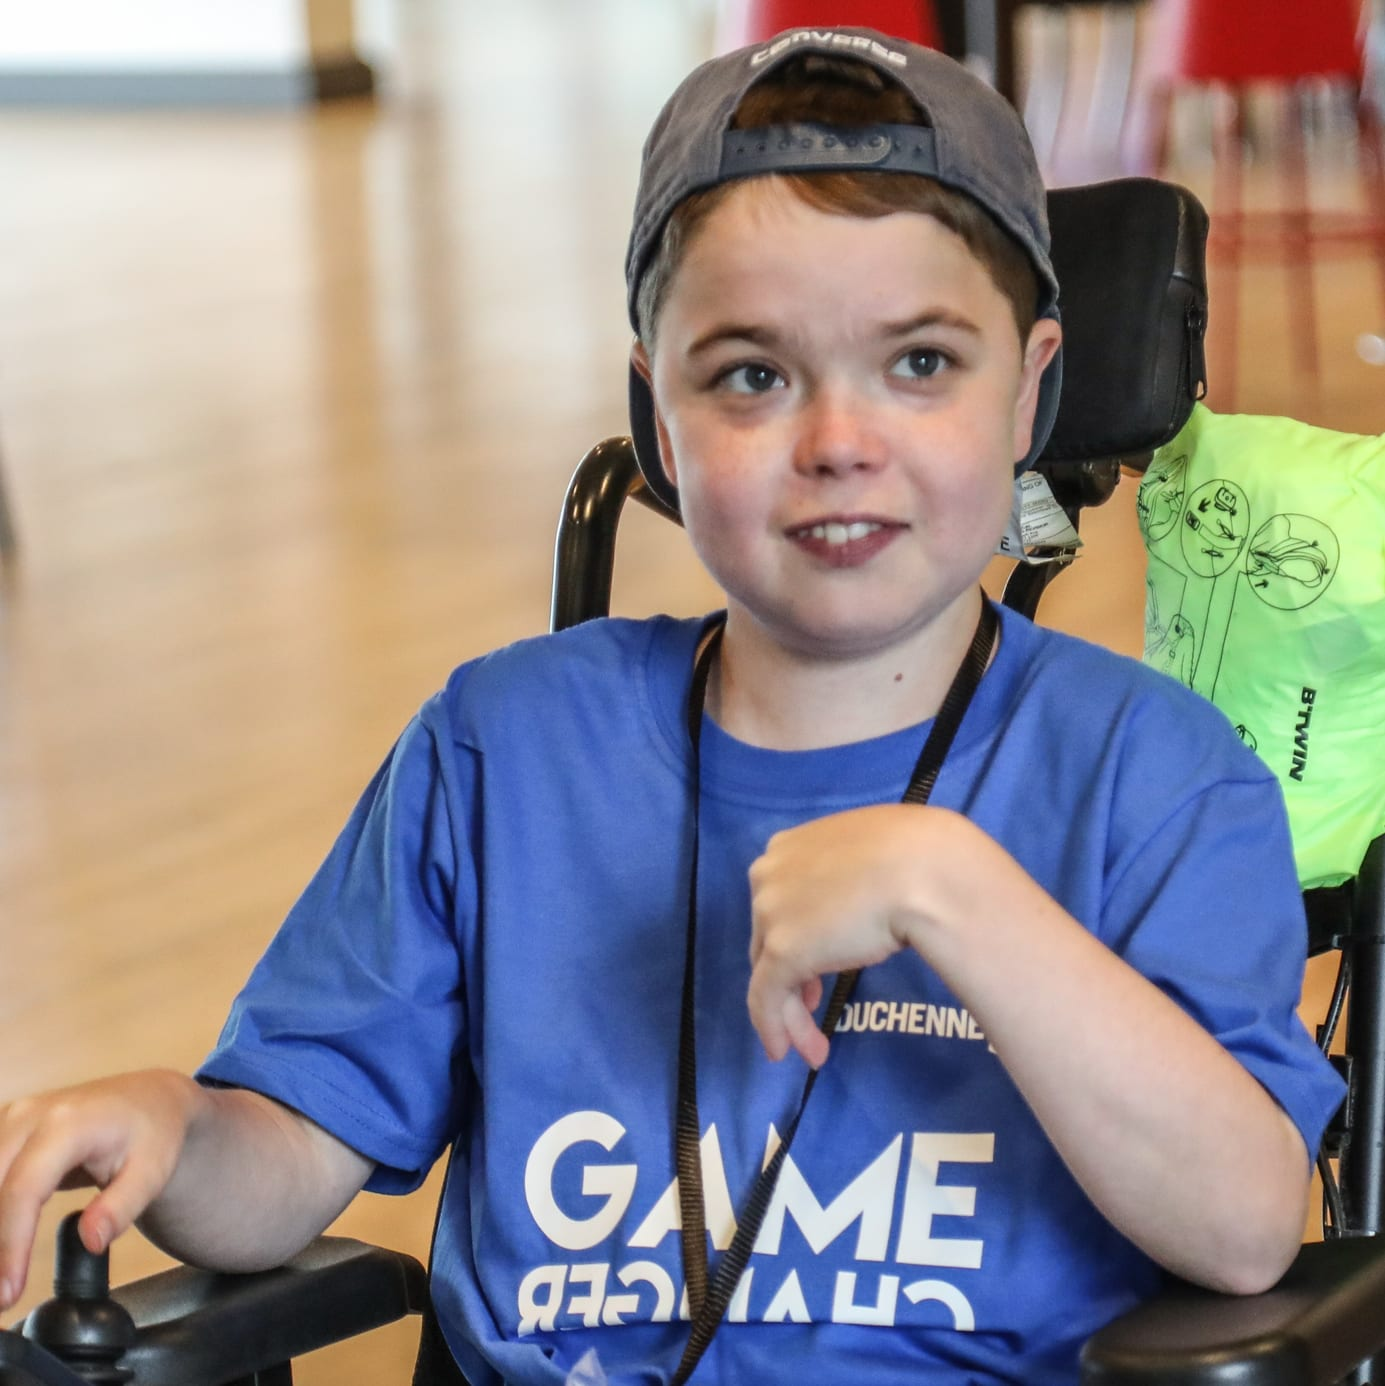 A boy with DMD taking part in a Duchenne UK gaming day